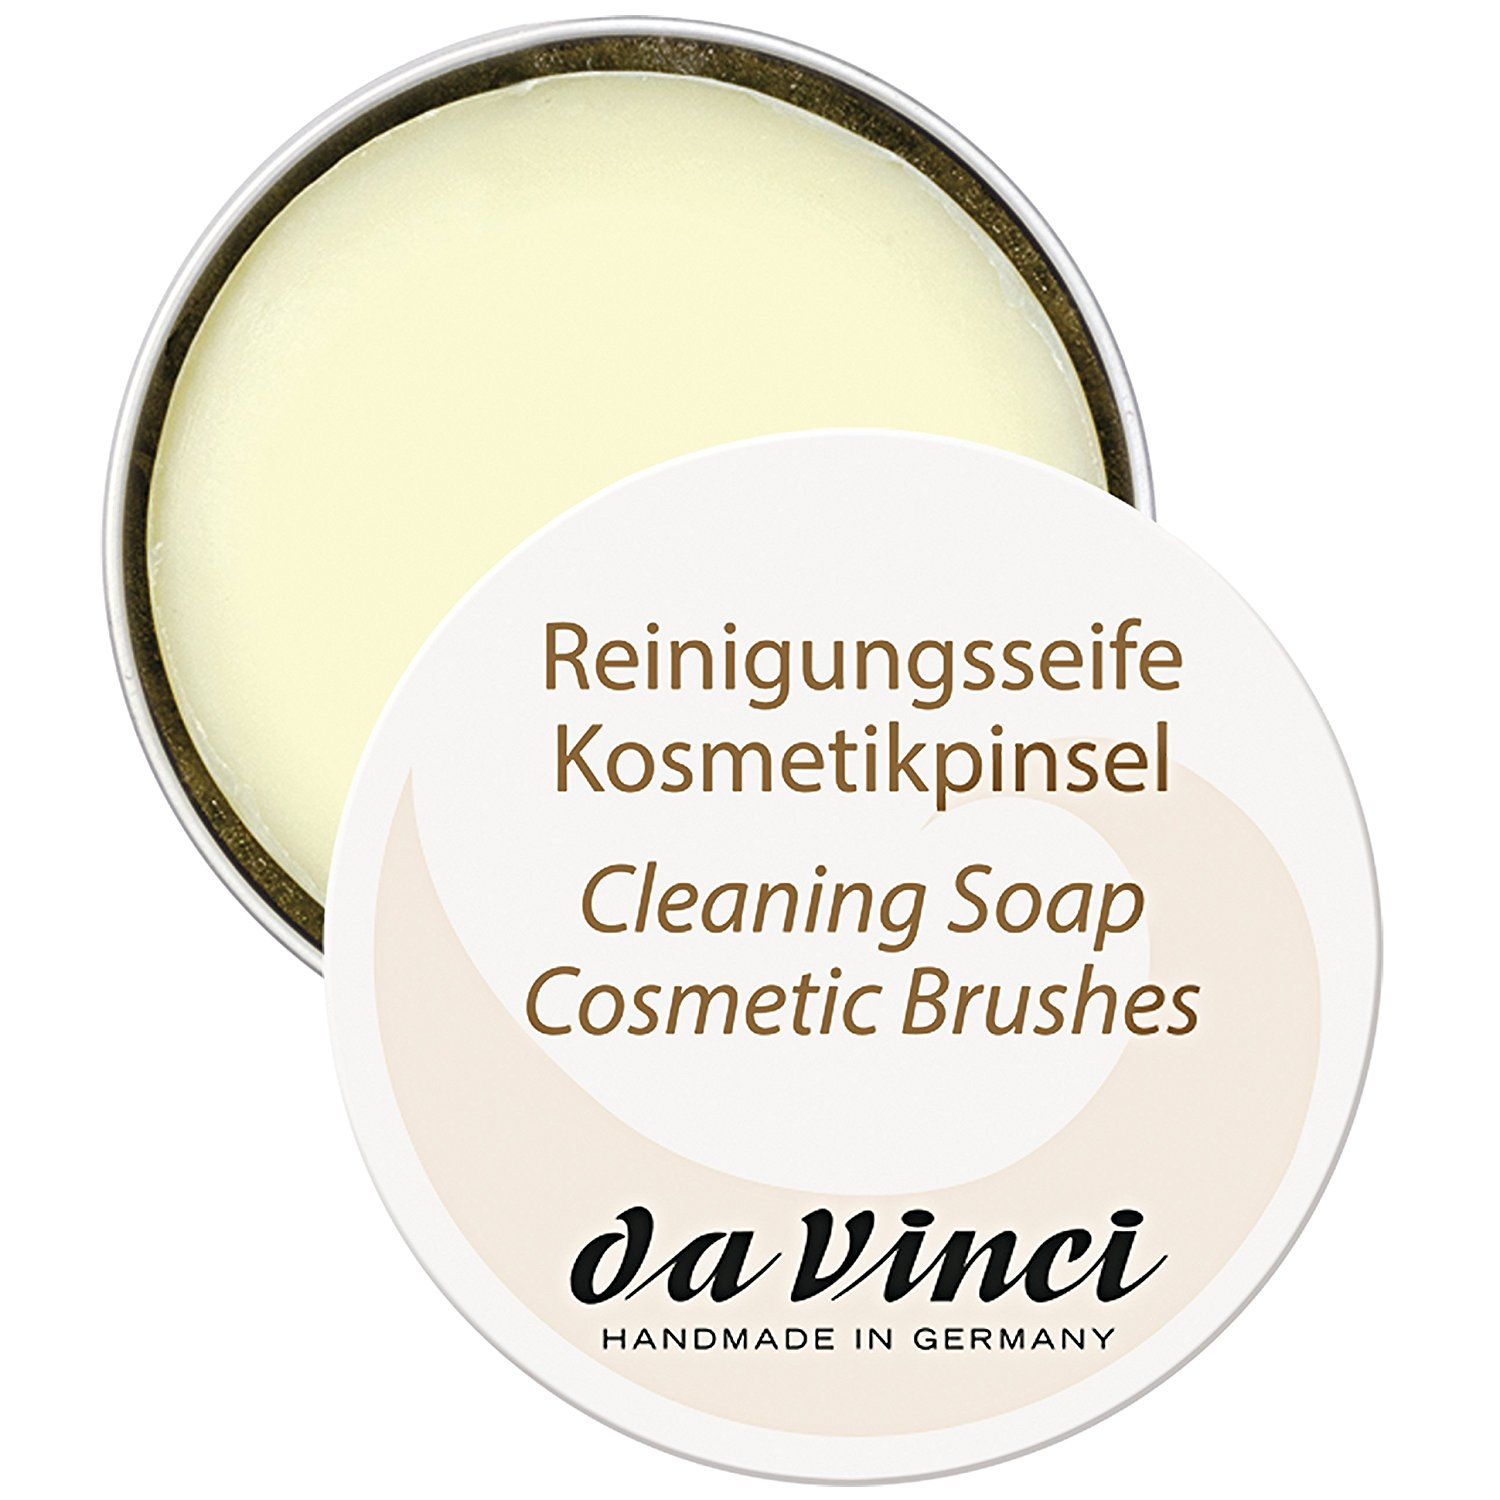 Da Vinci Cleaning Soap Cosmetic Brushes